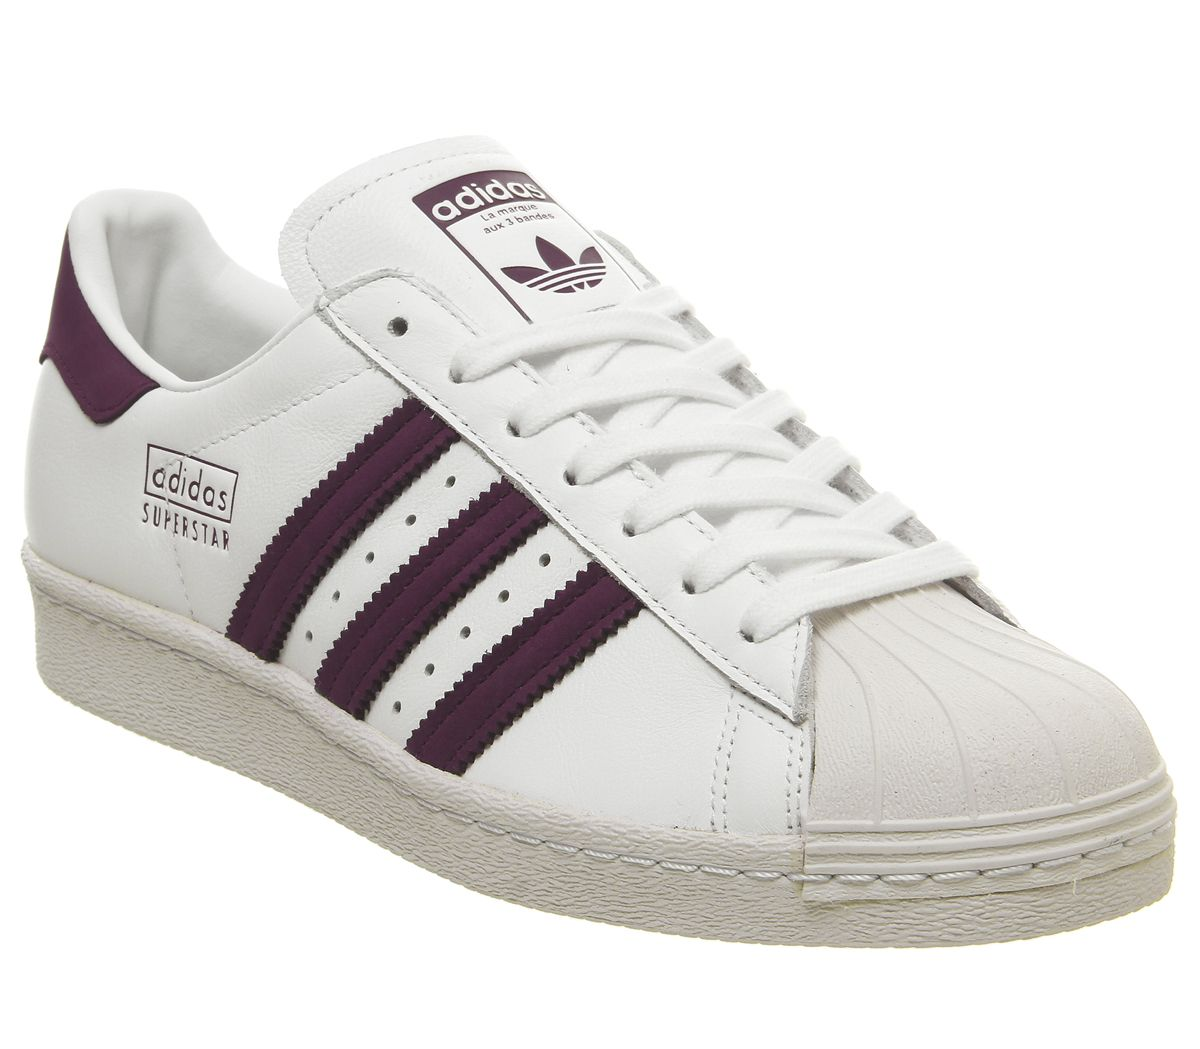 White Maroon Crystal Adidas Superstar Details Shoes 80s About Mens Trainers HWD92IYeE